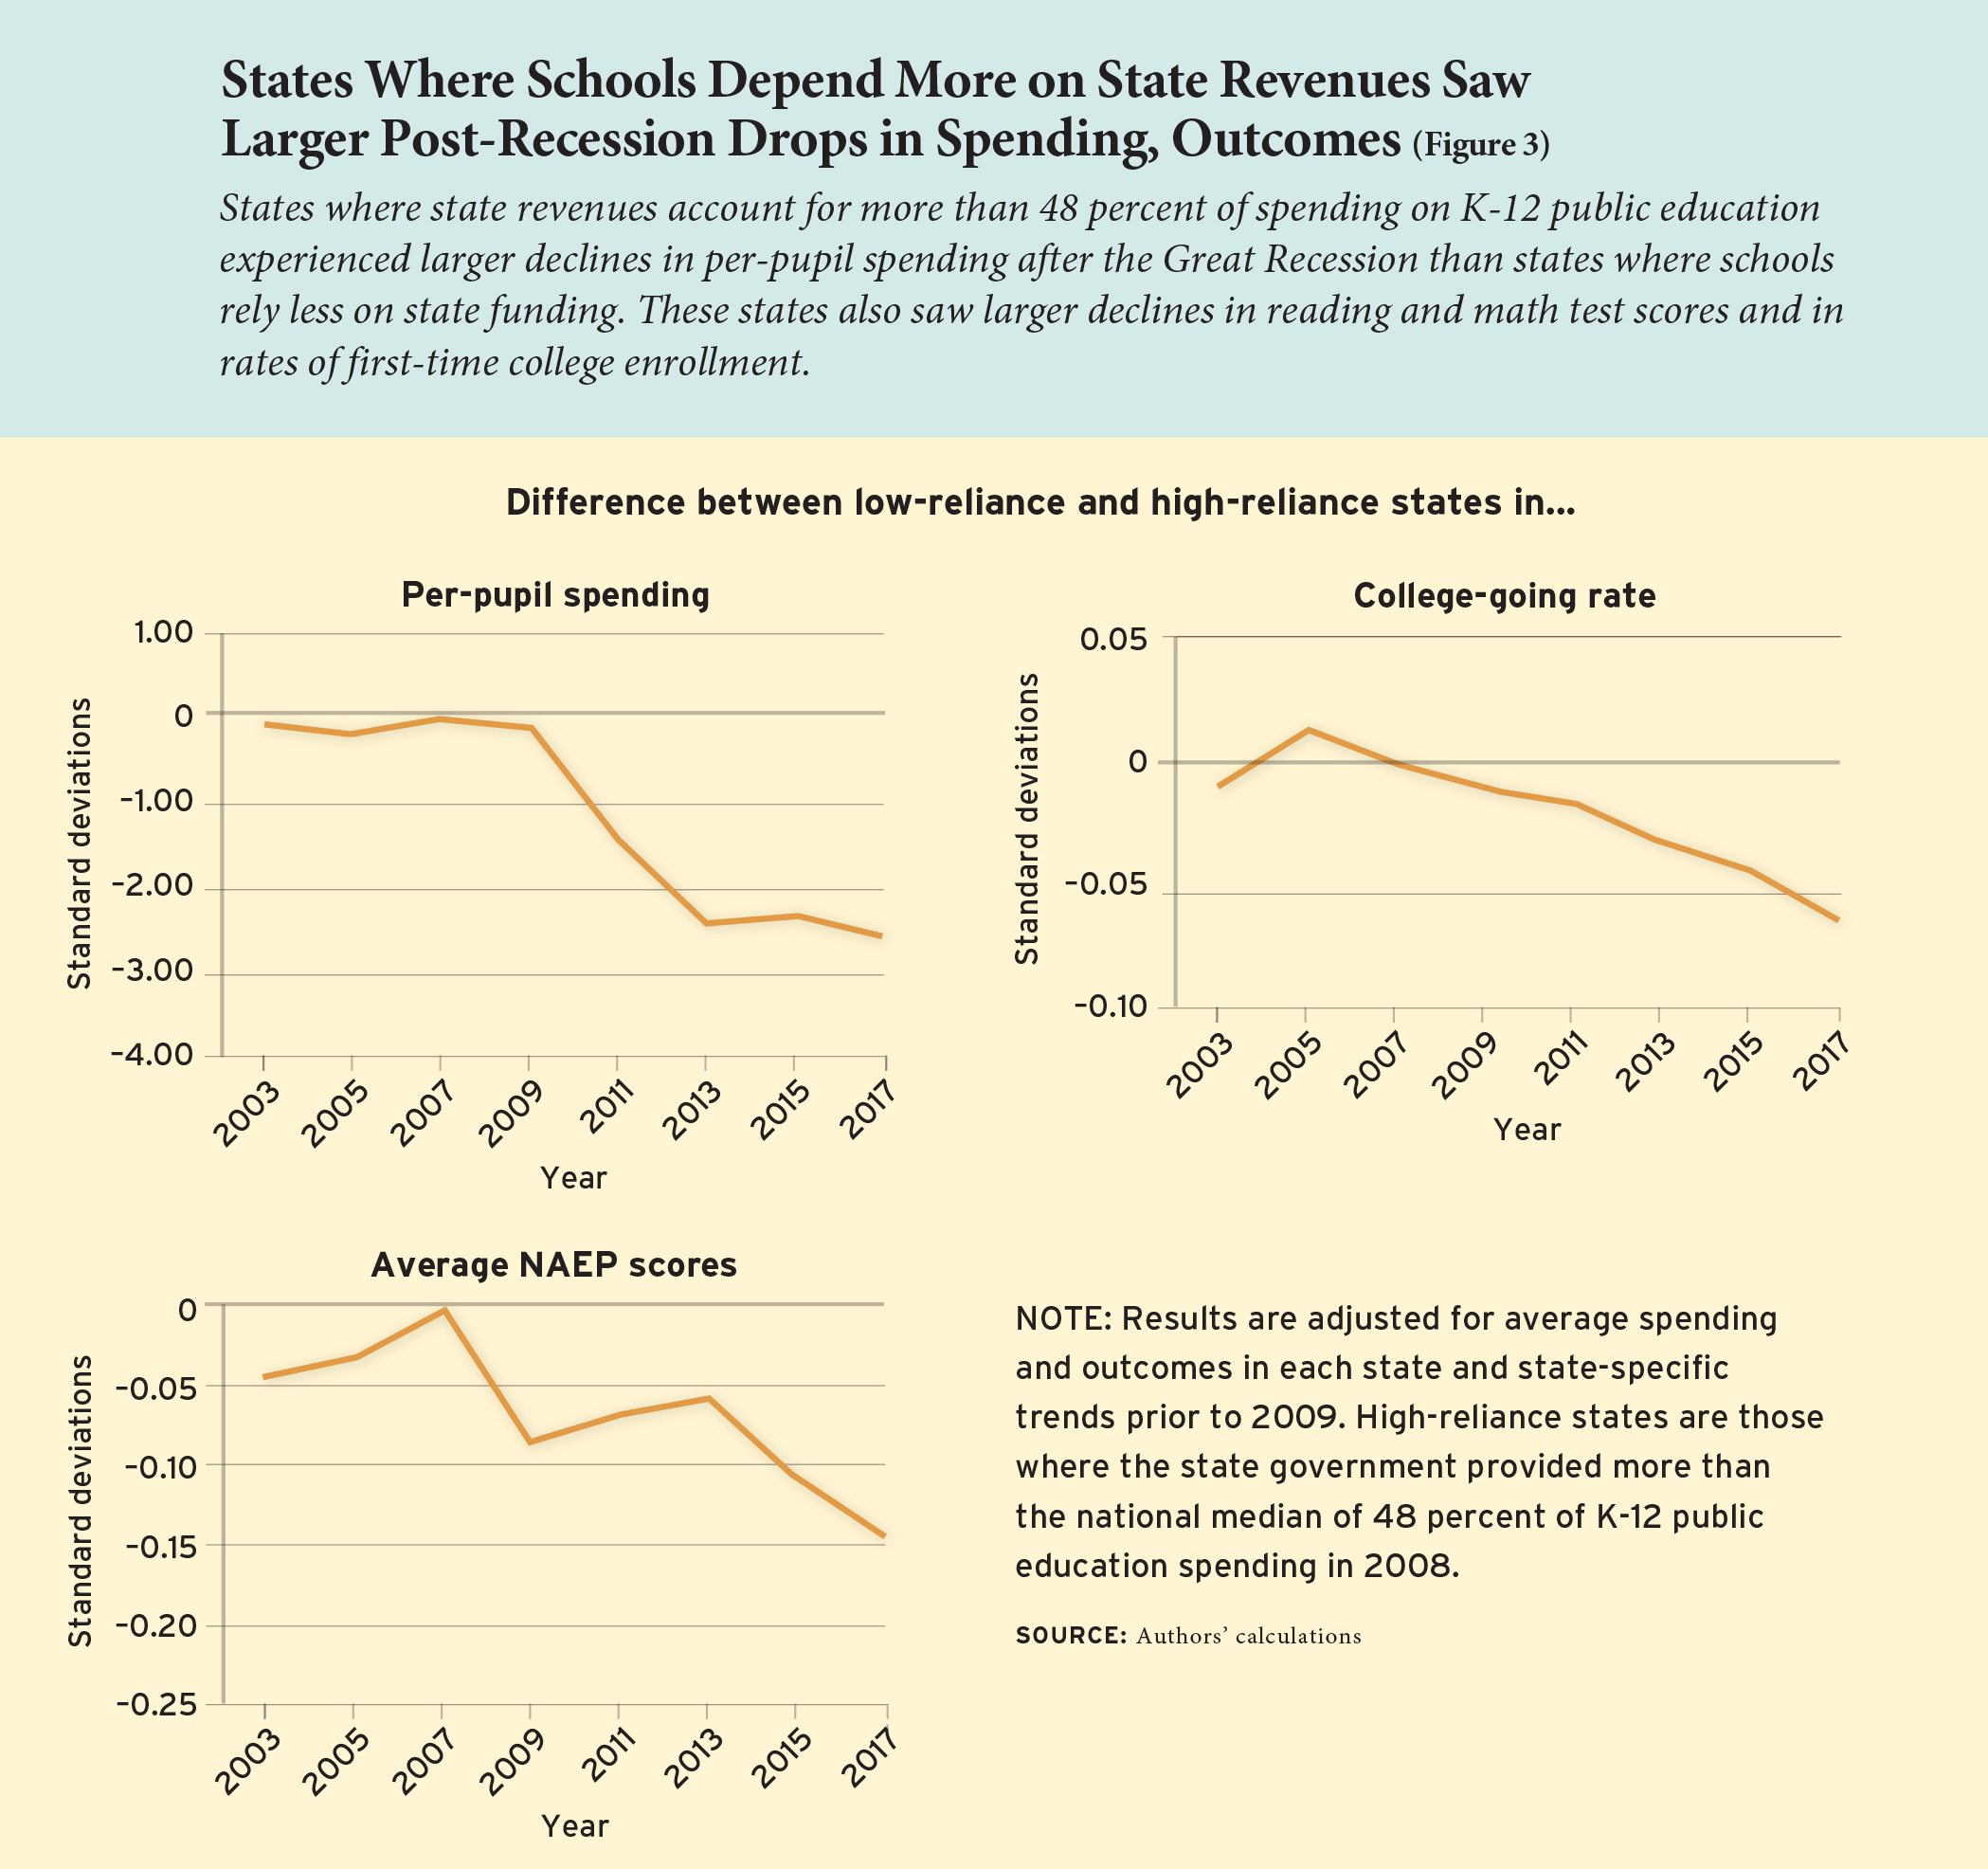 Figure 3: States Where Schools Depend More on State Revenues Saw Larger Post-Recession Drops in Spending, Outcomes